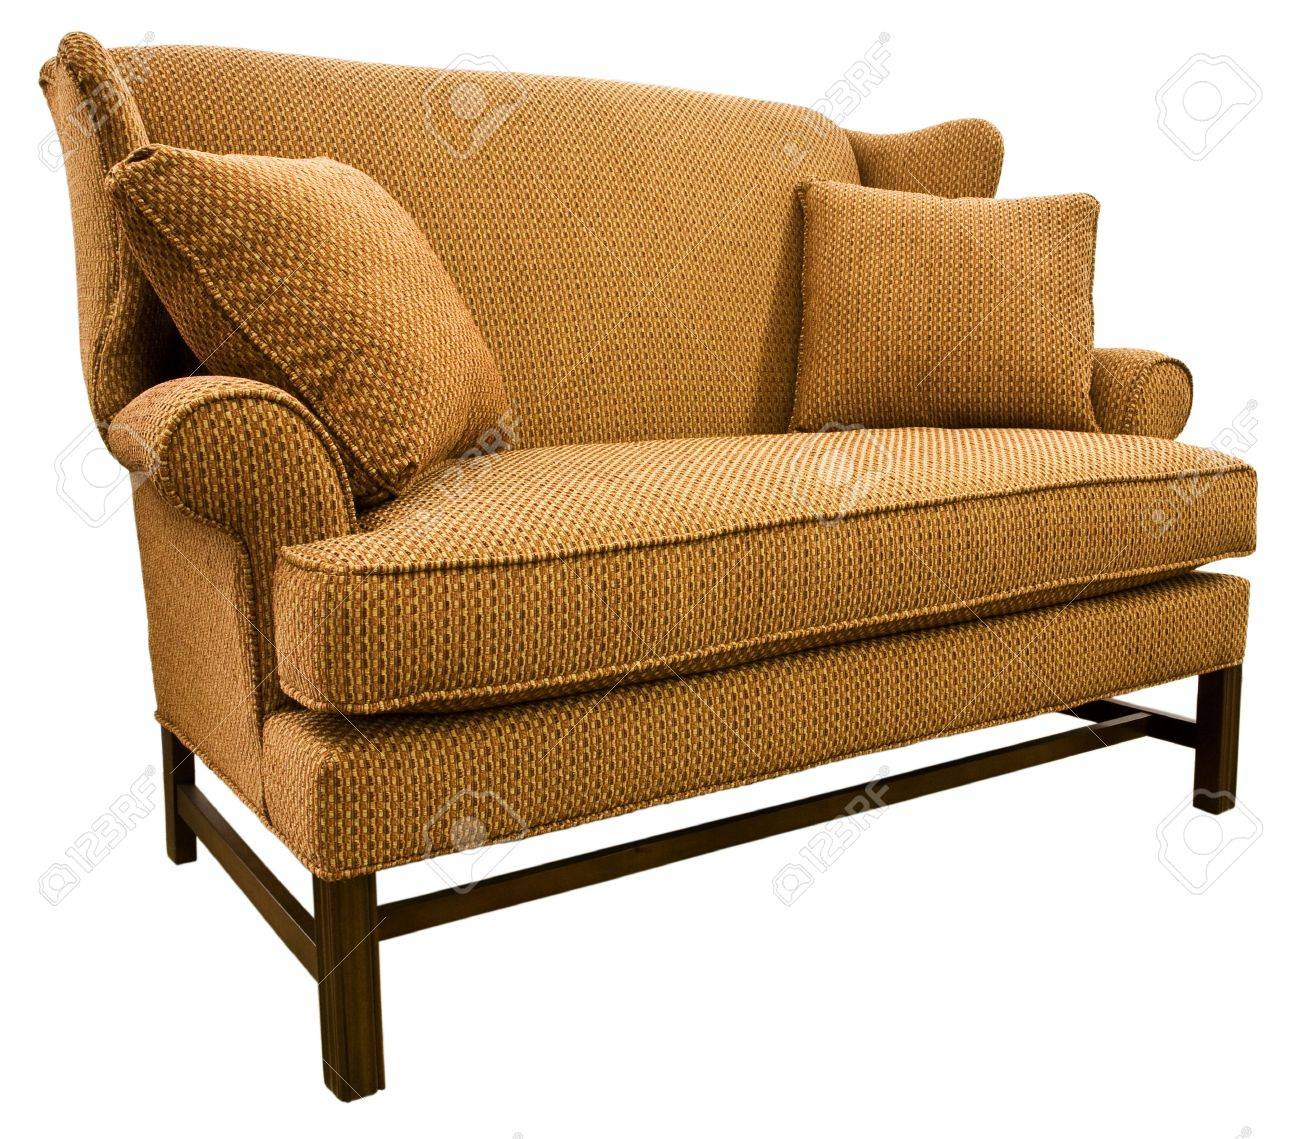 Settee Loveseat Chippendale Settee Loveseat With Cherry Wood Legs